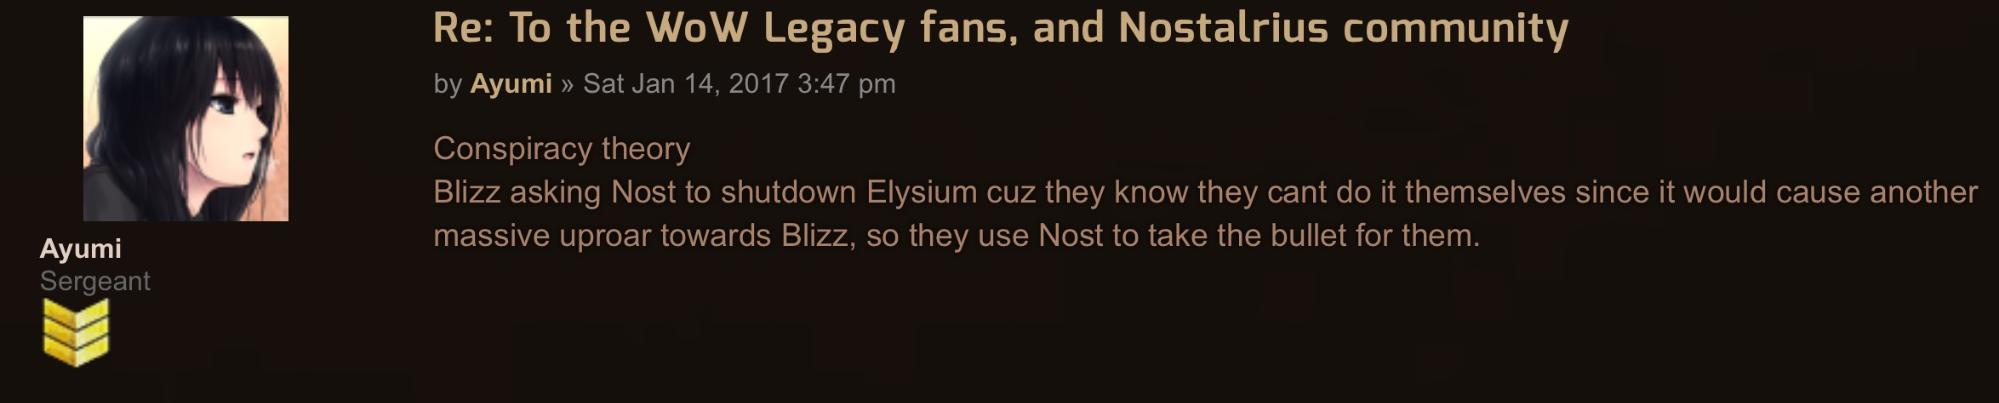 illegal wow server asks other illegal wow server to shut down